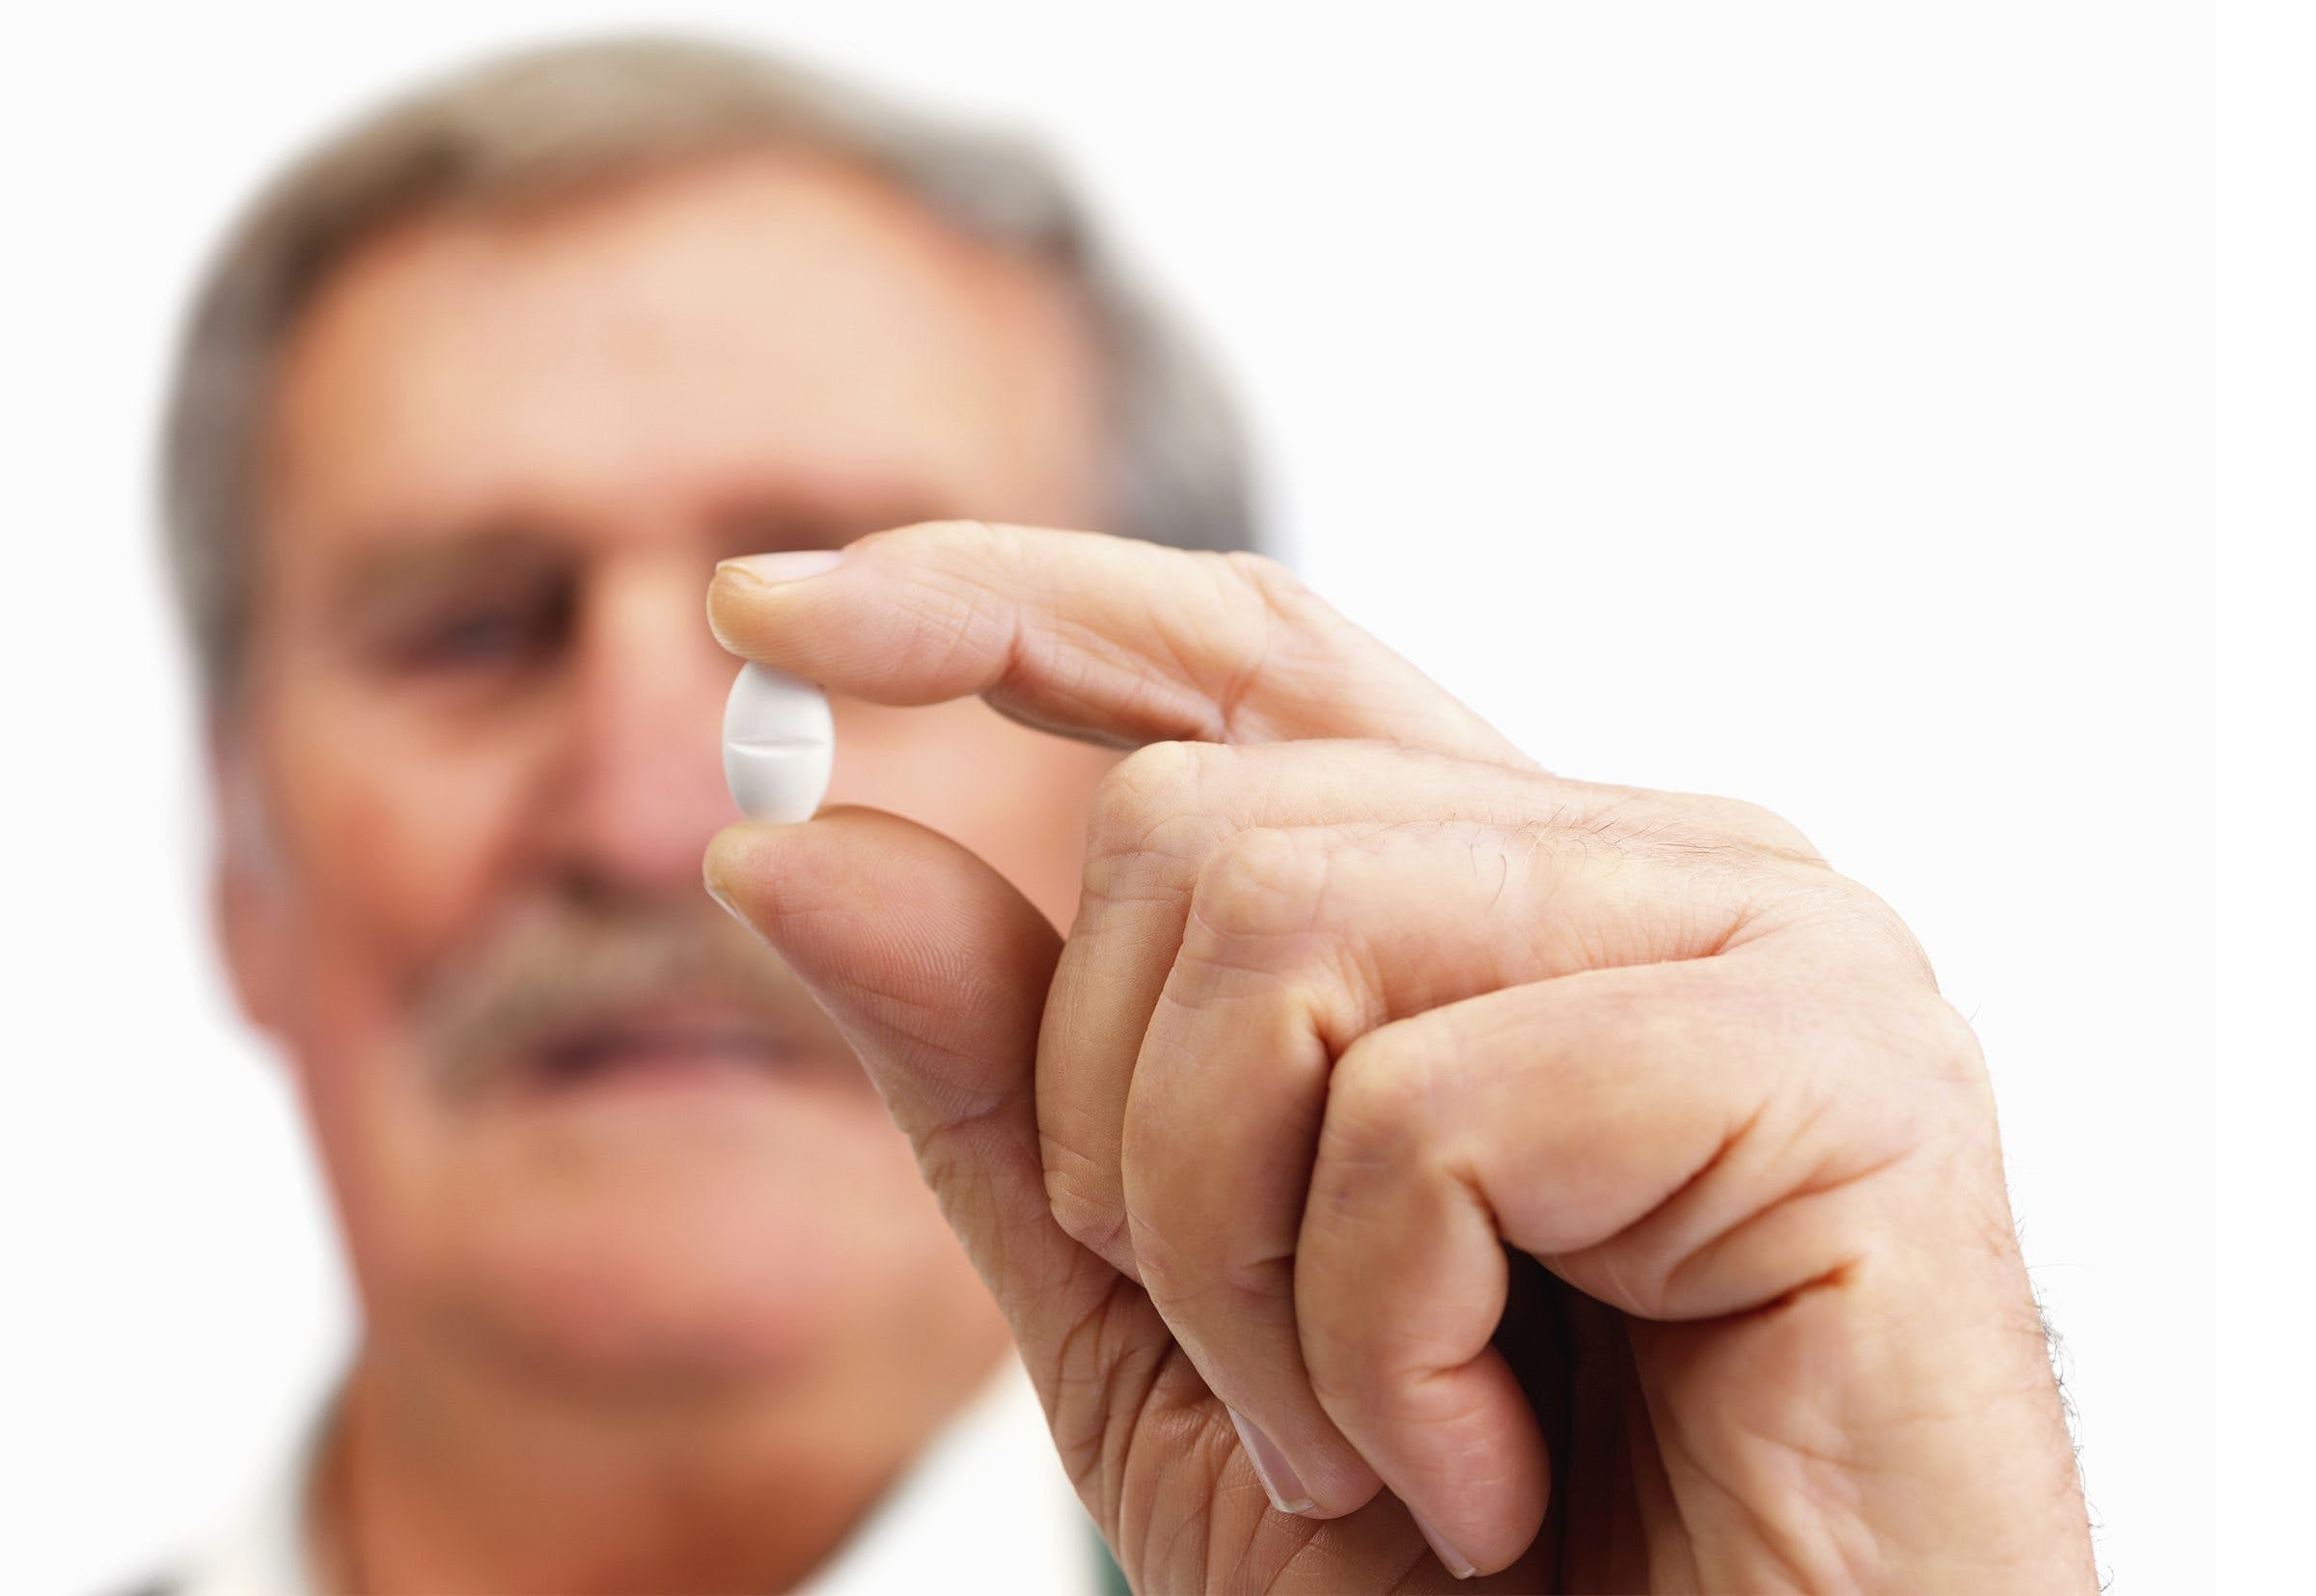 Do Statins Speed up Aging... Or Slow It?